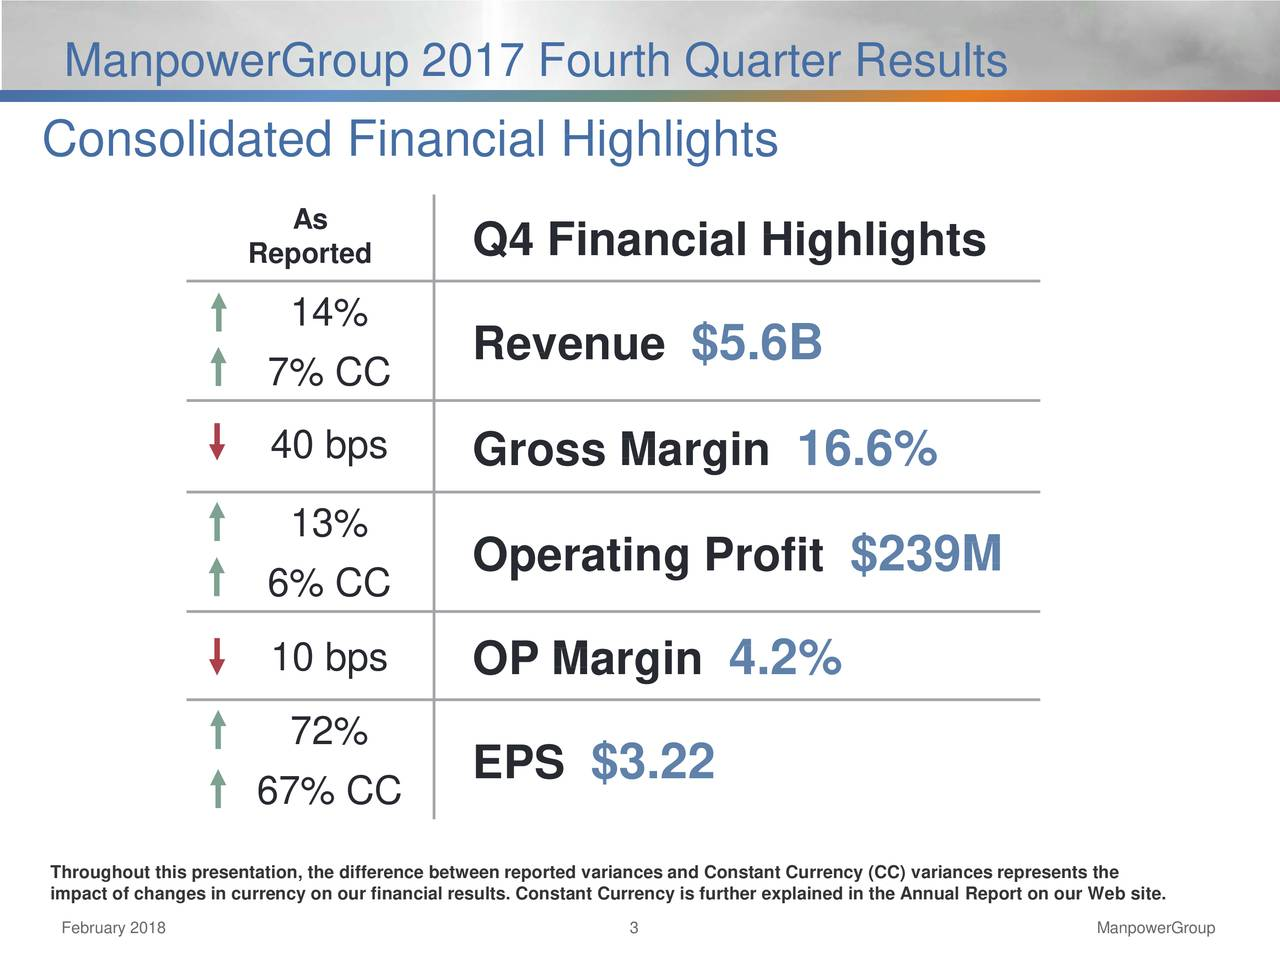 Consolidated Financial Highlights As Reported Q4 Financial Highlights 14% Revenue $5.6B 7% CC 40 bps Gross Margin 16.6% 13% Operating Profit $239M 6% CC 10 bps OP Margin 4.2% 72% EPS $3.22 67% CC impact of changes in currency on our financial results. Constant Currency is further explained in the Annual Report on our We b site. February 2018 3 ManpowerGroup